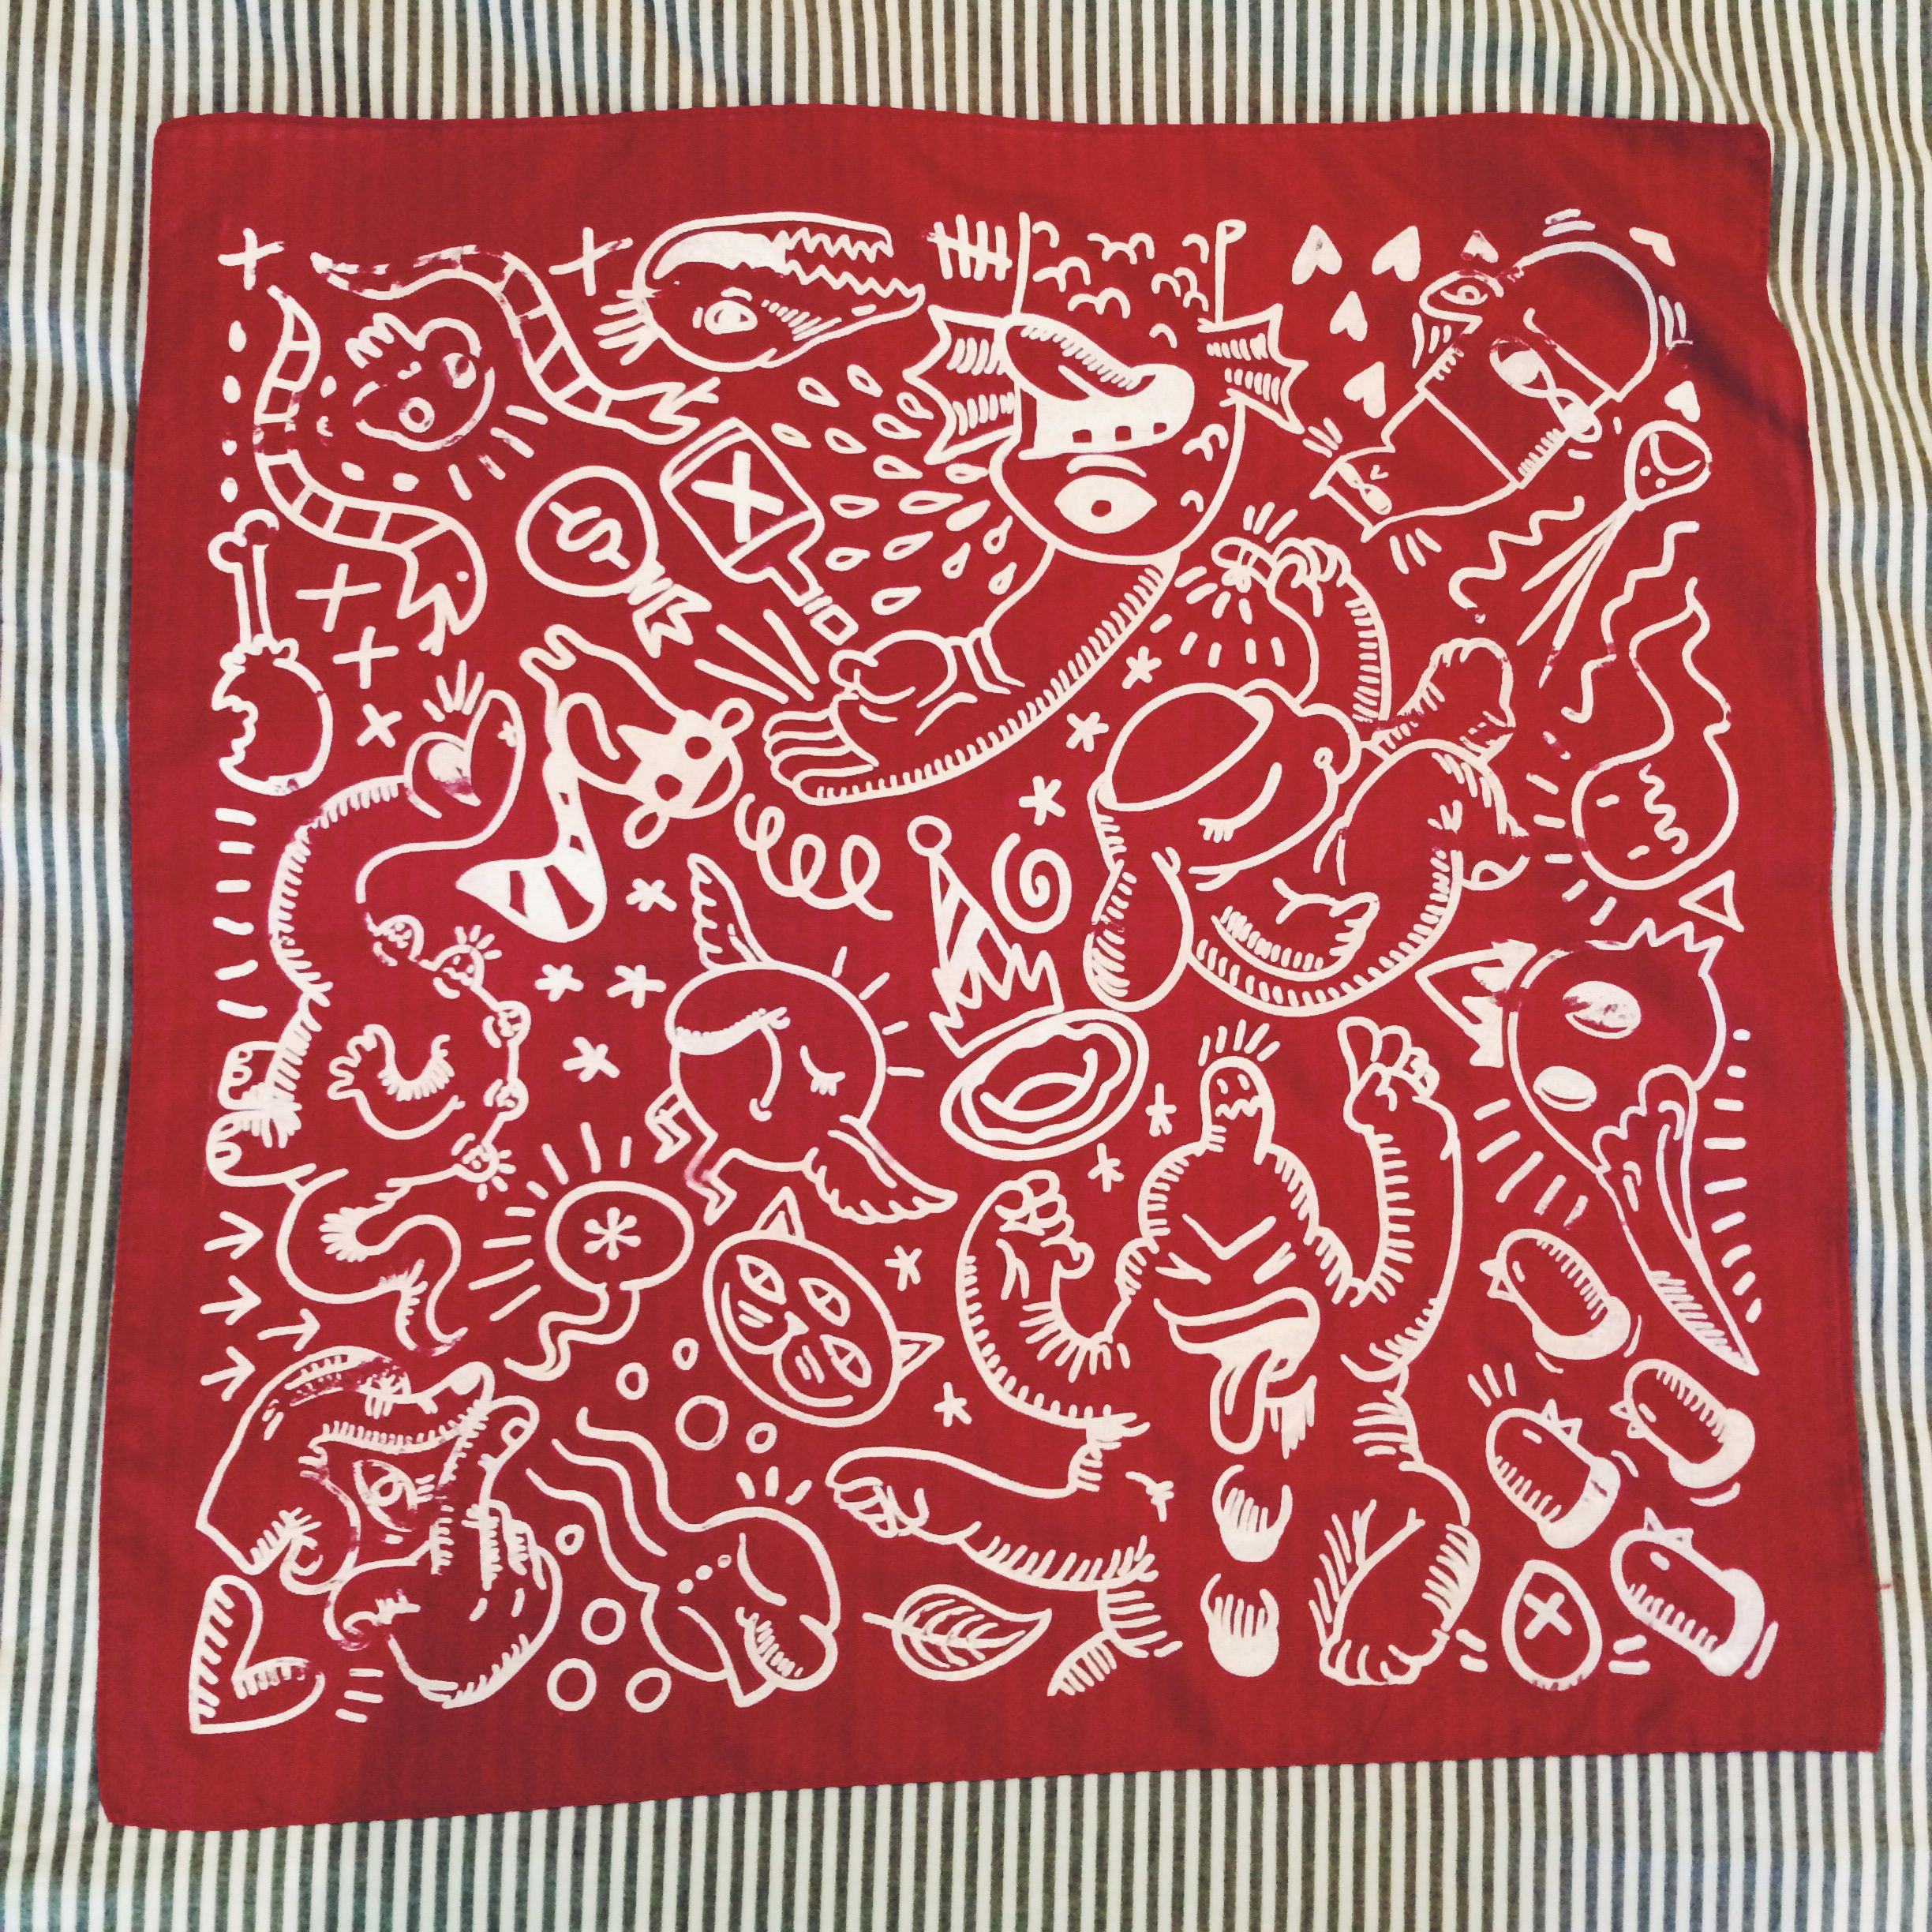 2448x2448 Design Number 3 Of 5. This Is A Handkerchief Bandana I Made By